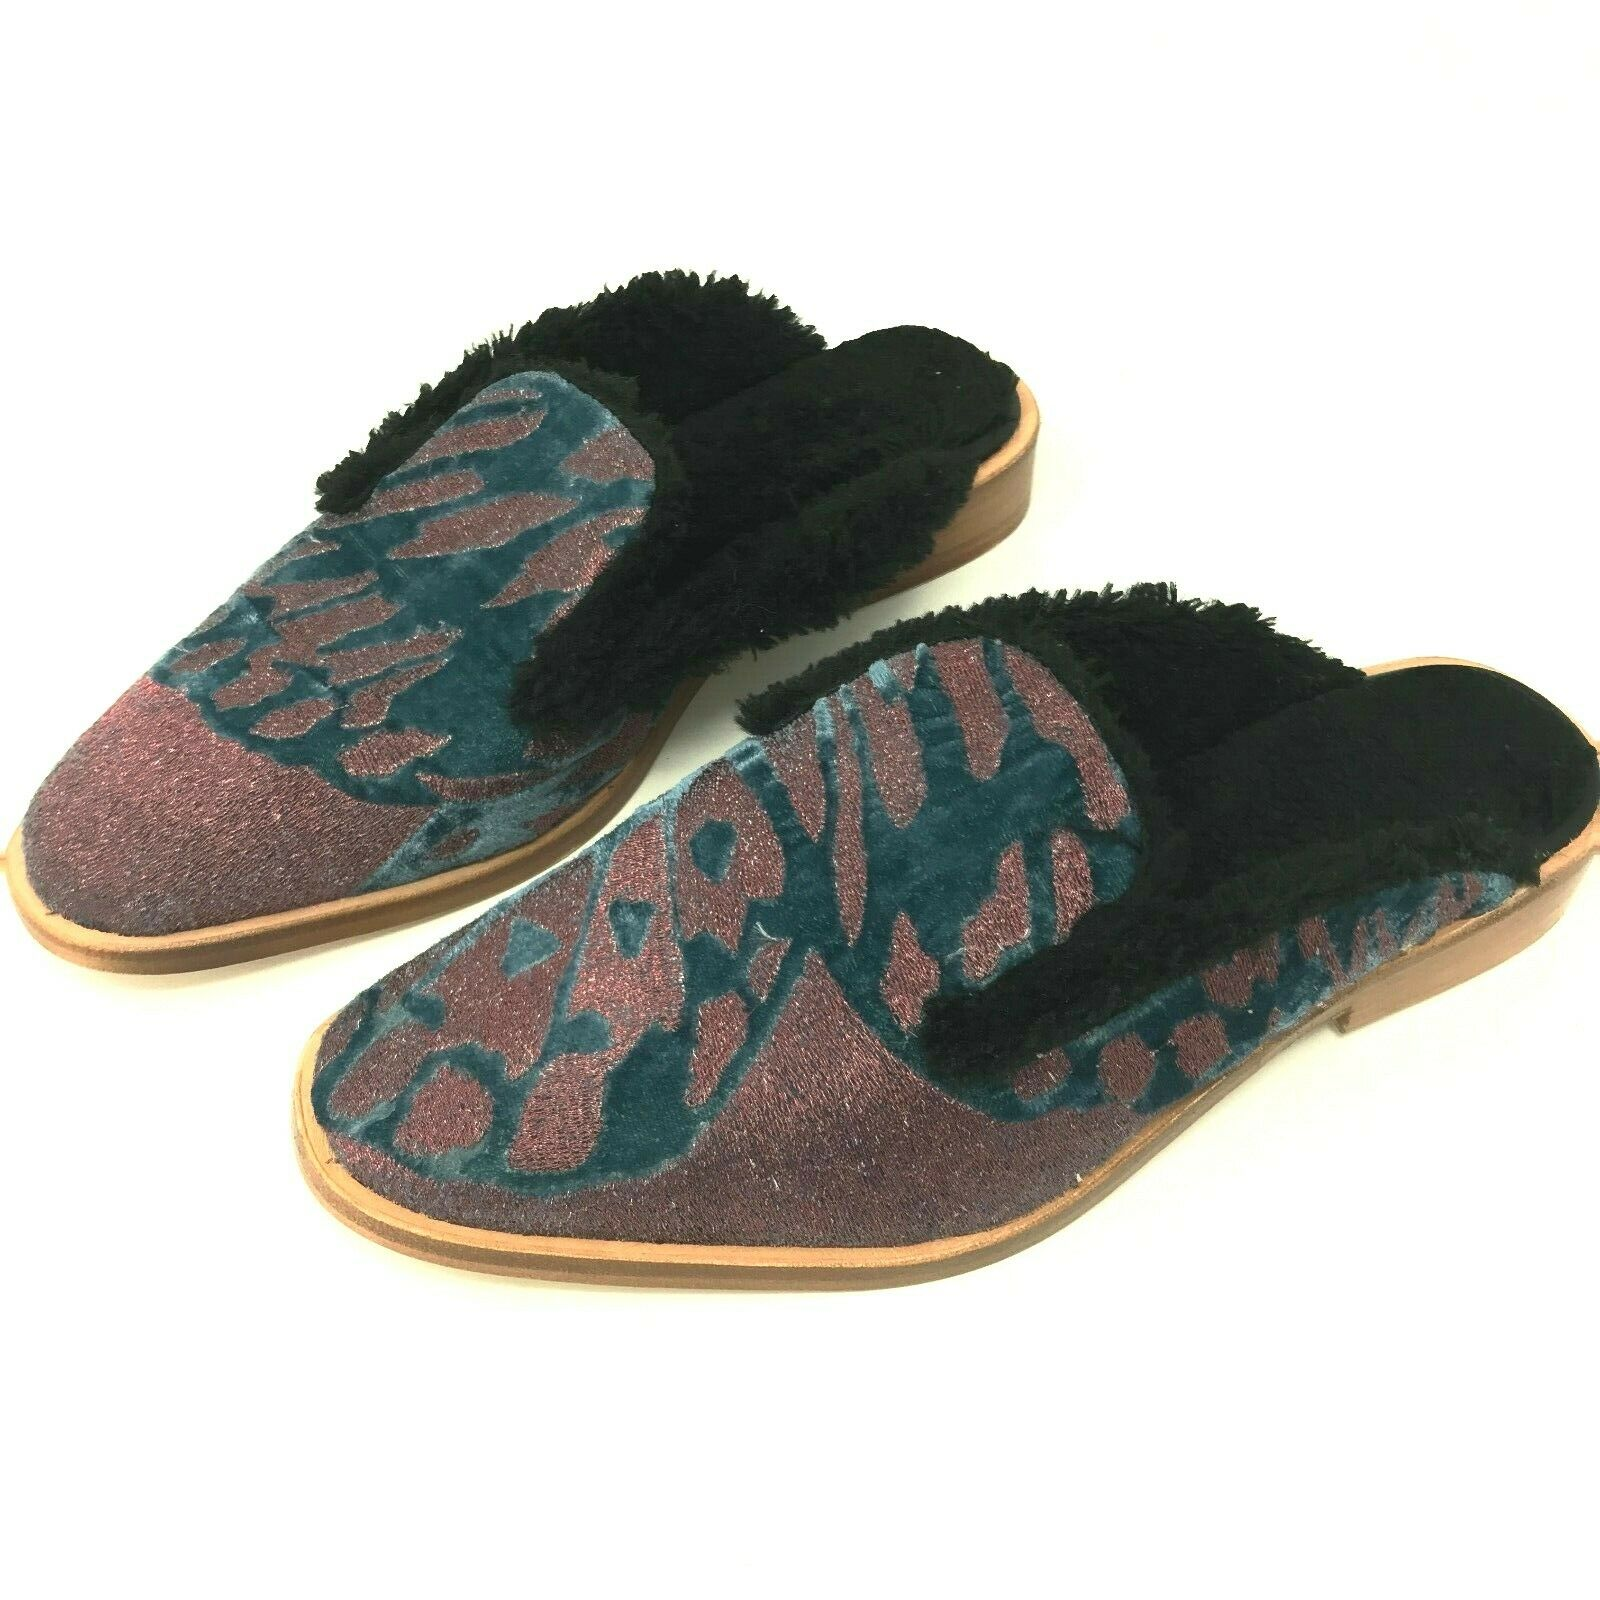 Free People Women's Fur Lined Butterfly Effect Mules Mules Mules Slides SZ 37 or 7 NWOB 06b19b